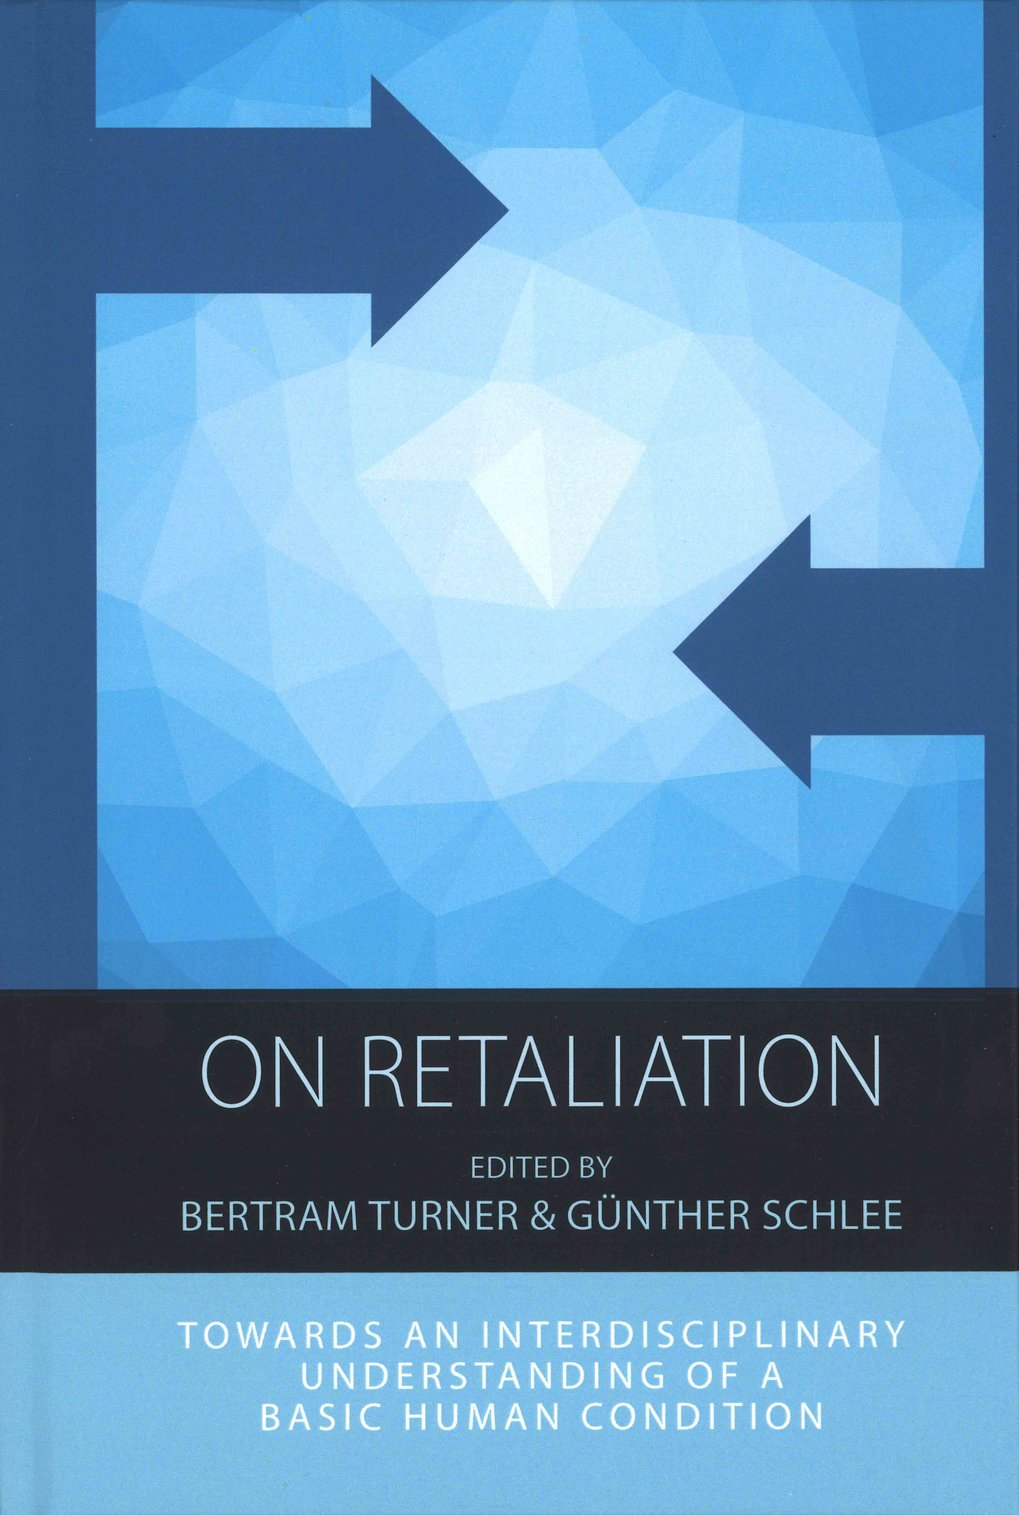 On retaliation: toward an interdisciplinary understanding of a basic human condition